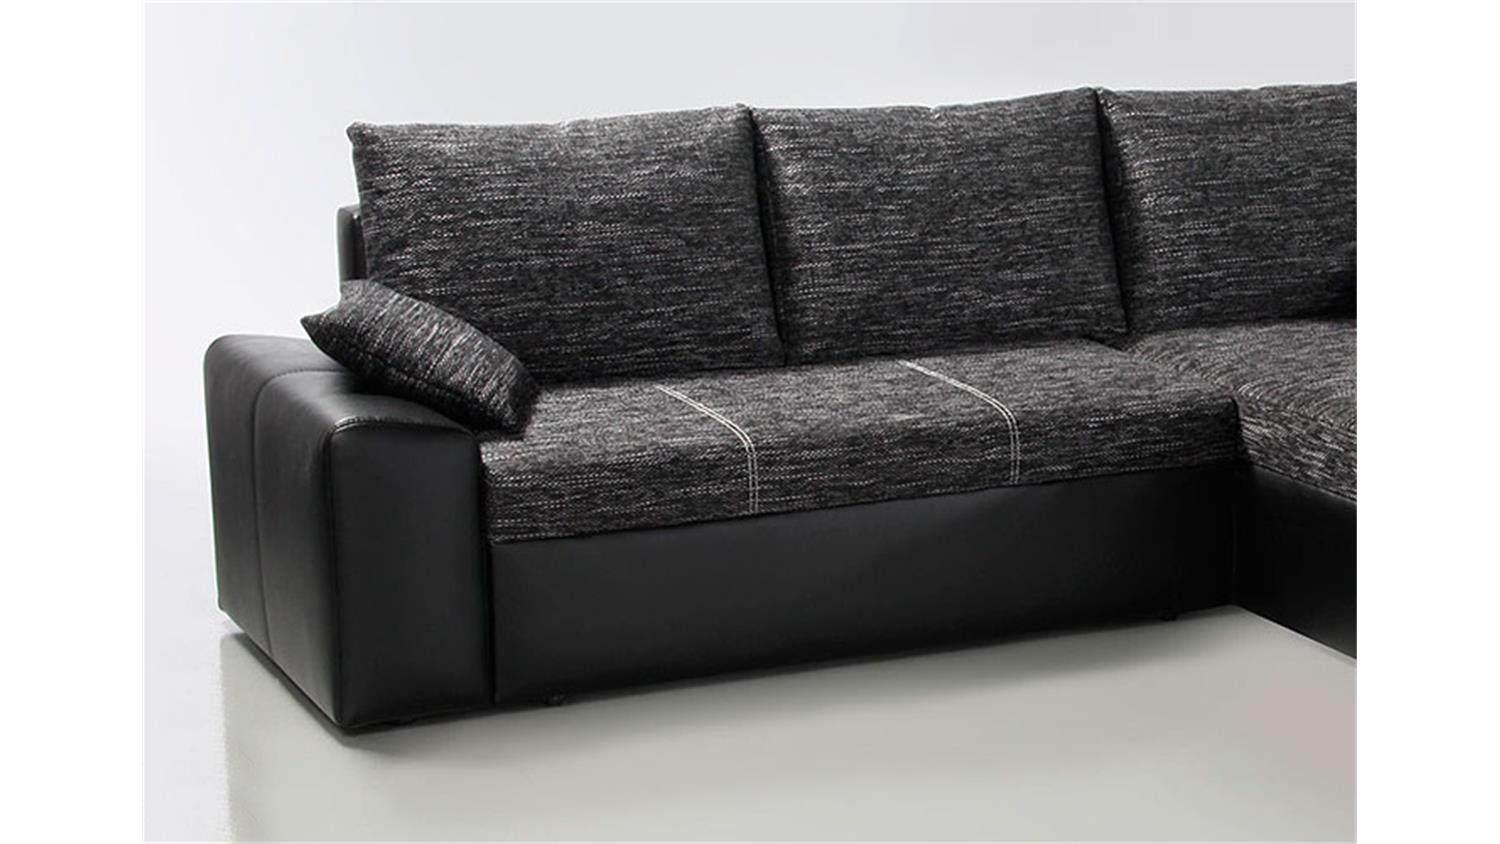 ecksofa kayne mit bettfunktion schwarz grau. Black Bedroom Furniture Sets. Home Design Ideas